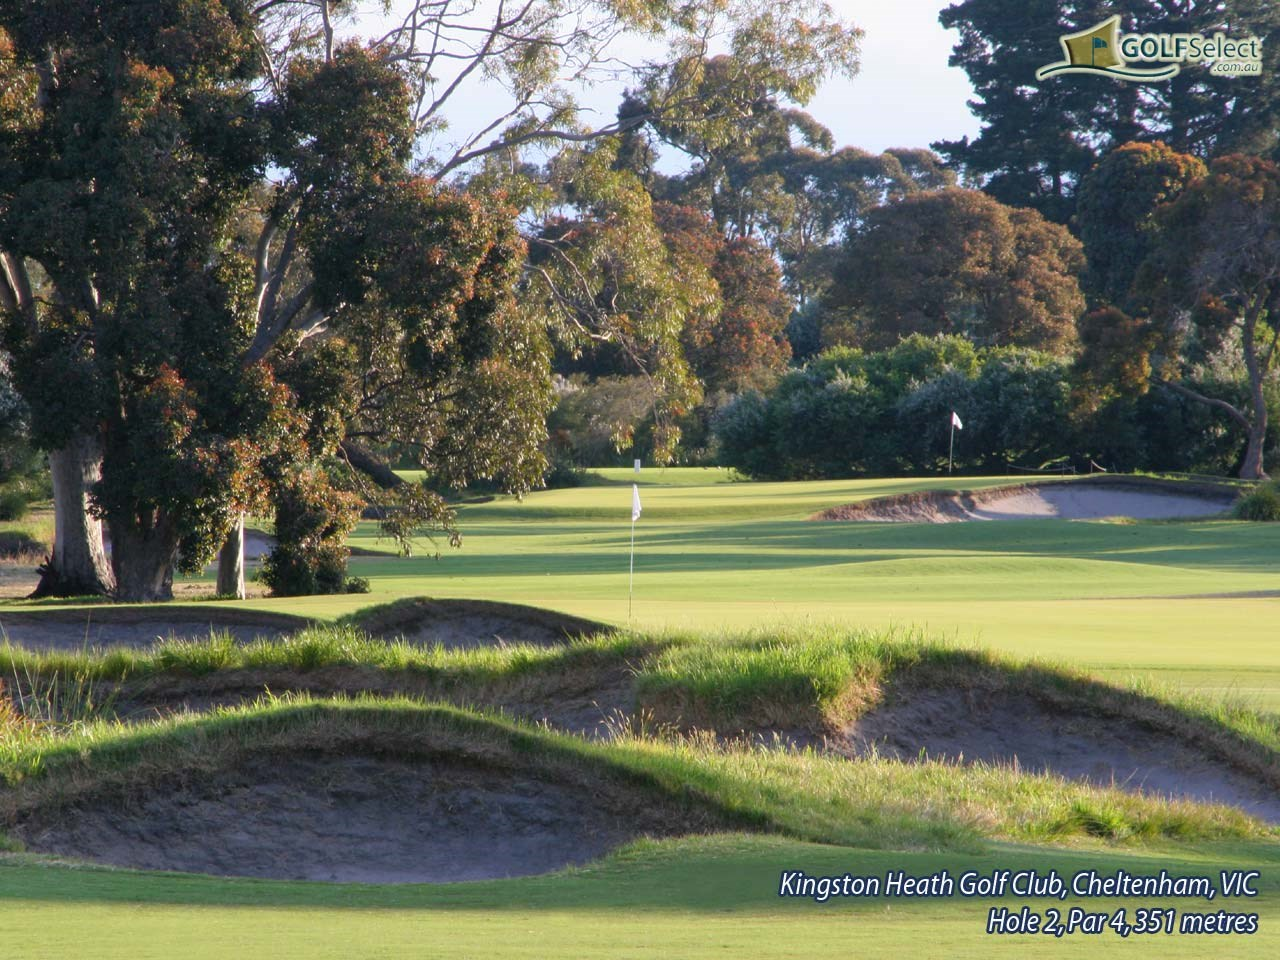 Kingston Heath Golf Club Hole 2, Par 4, 351 metres